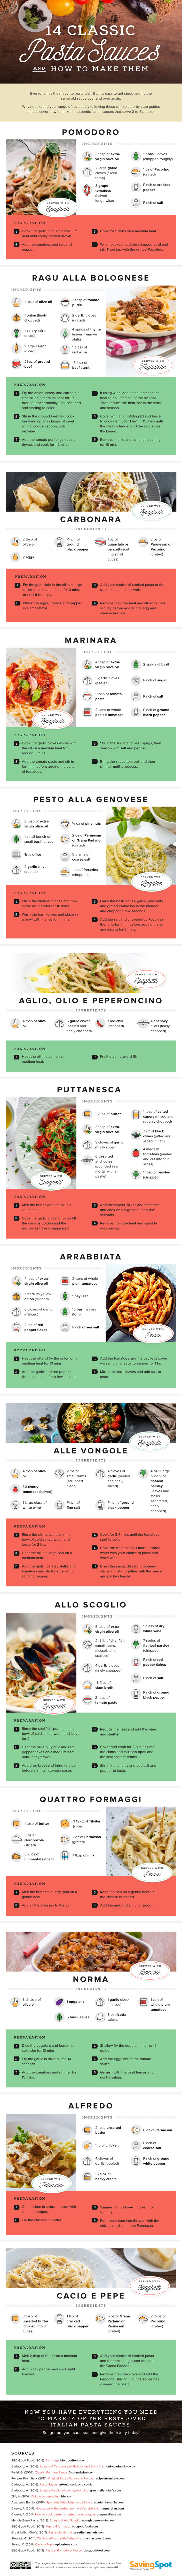 How to Make 14 Finger-Lickingly Delicious Classic Italian Pasta Sauces - Infographic